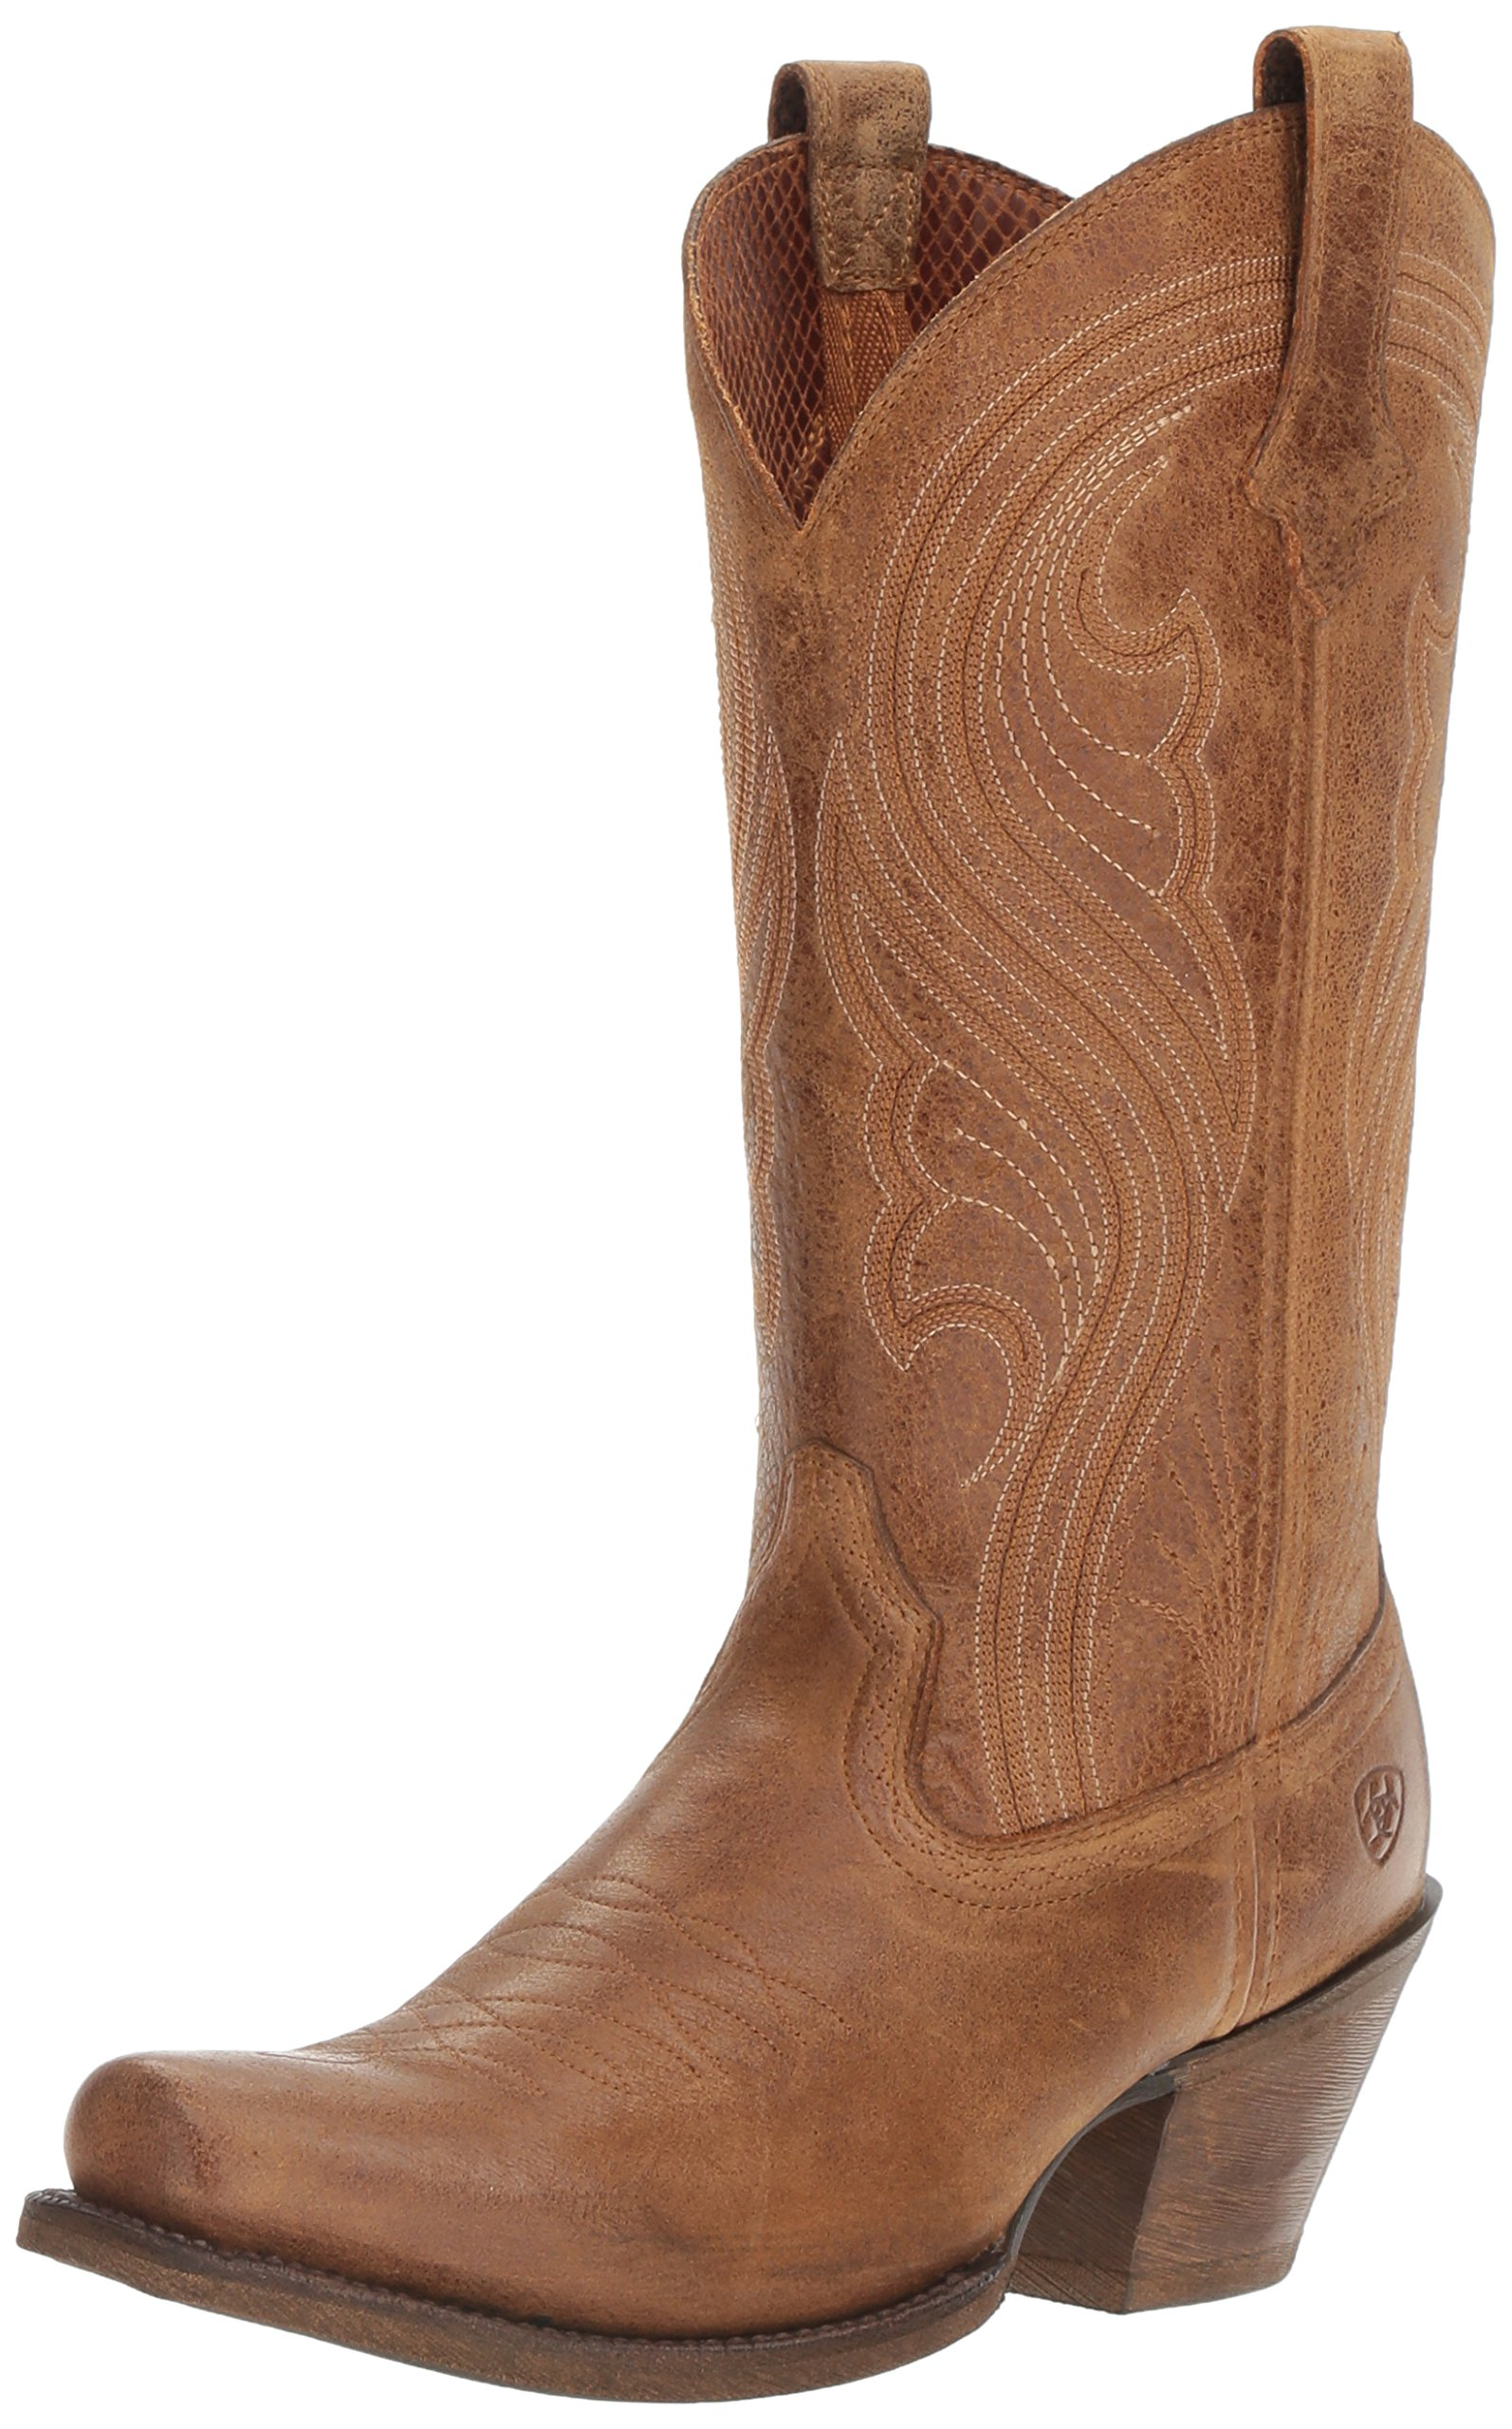 Ariat Women's Lively Western Cowboy Boot, Old West Brown, 9 B US by Ariat (Image #1)